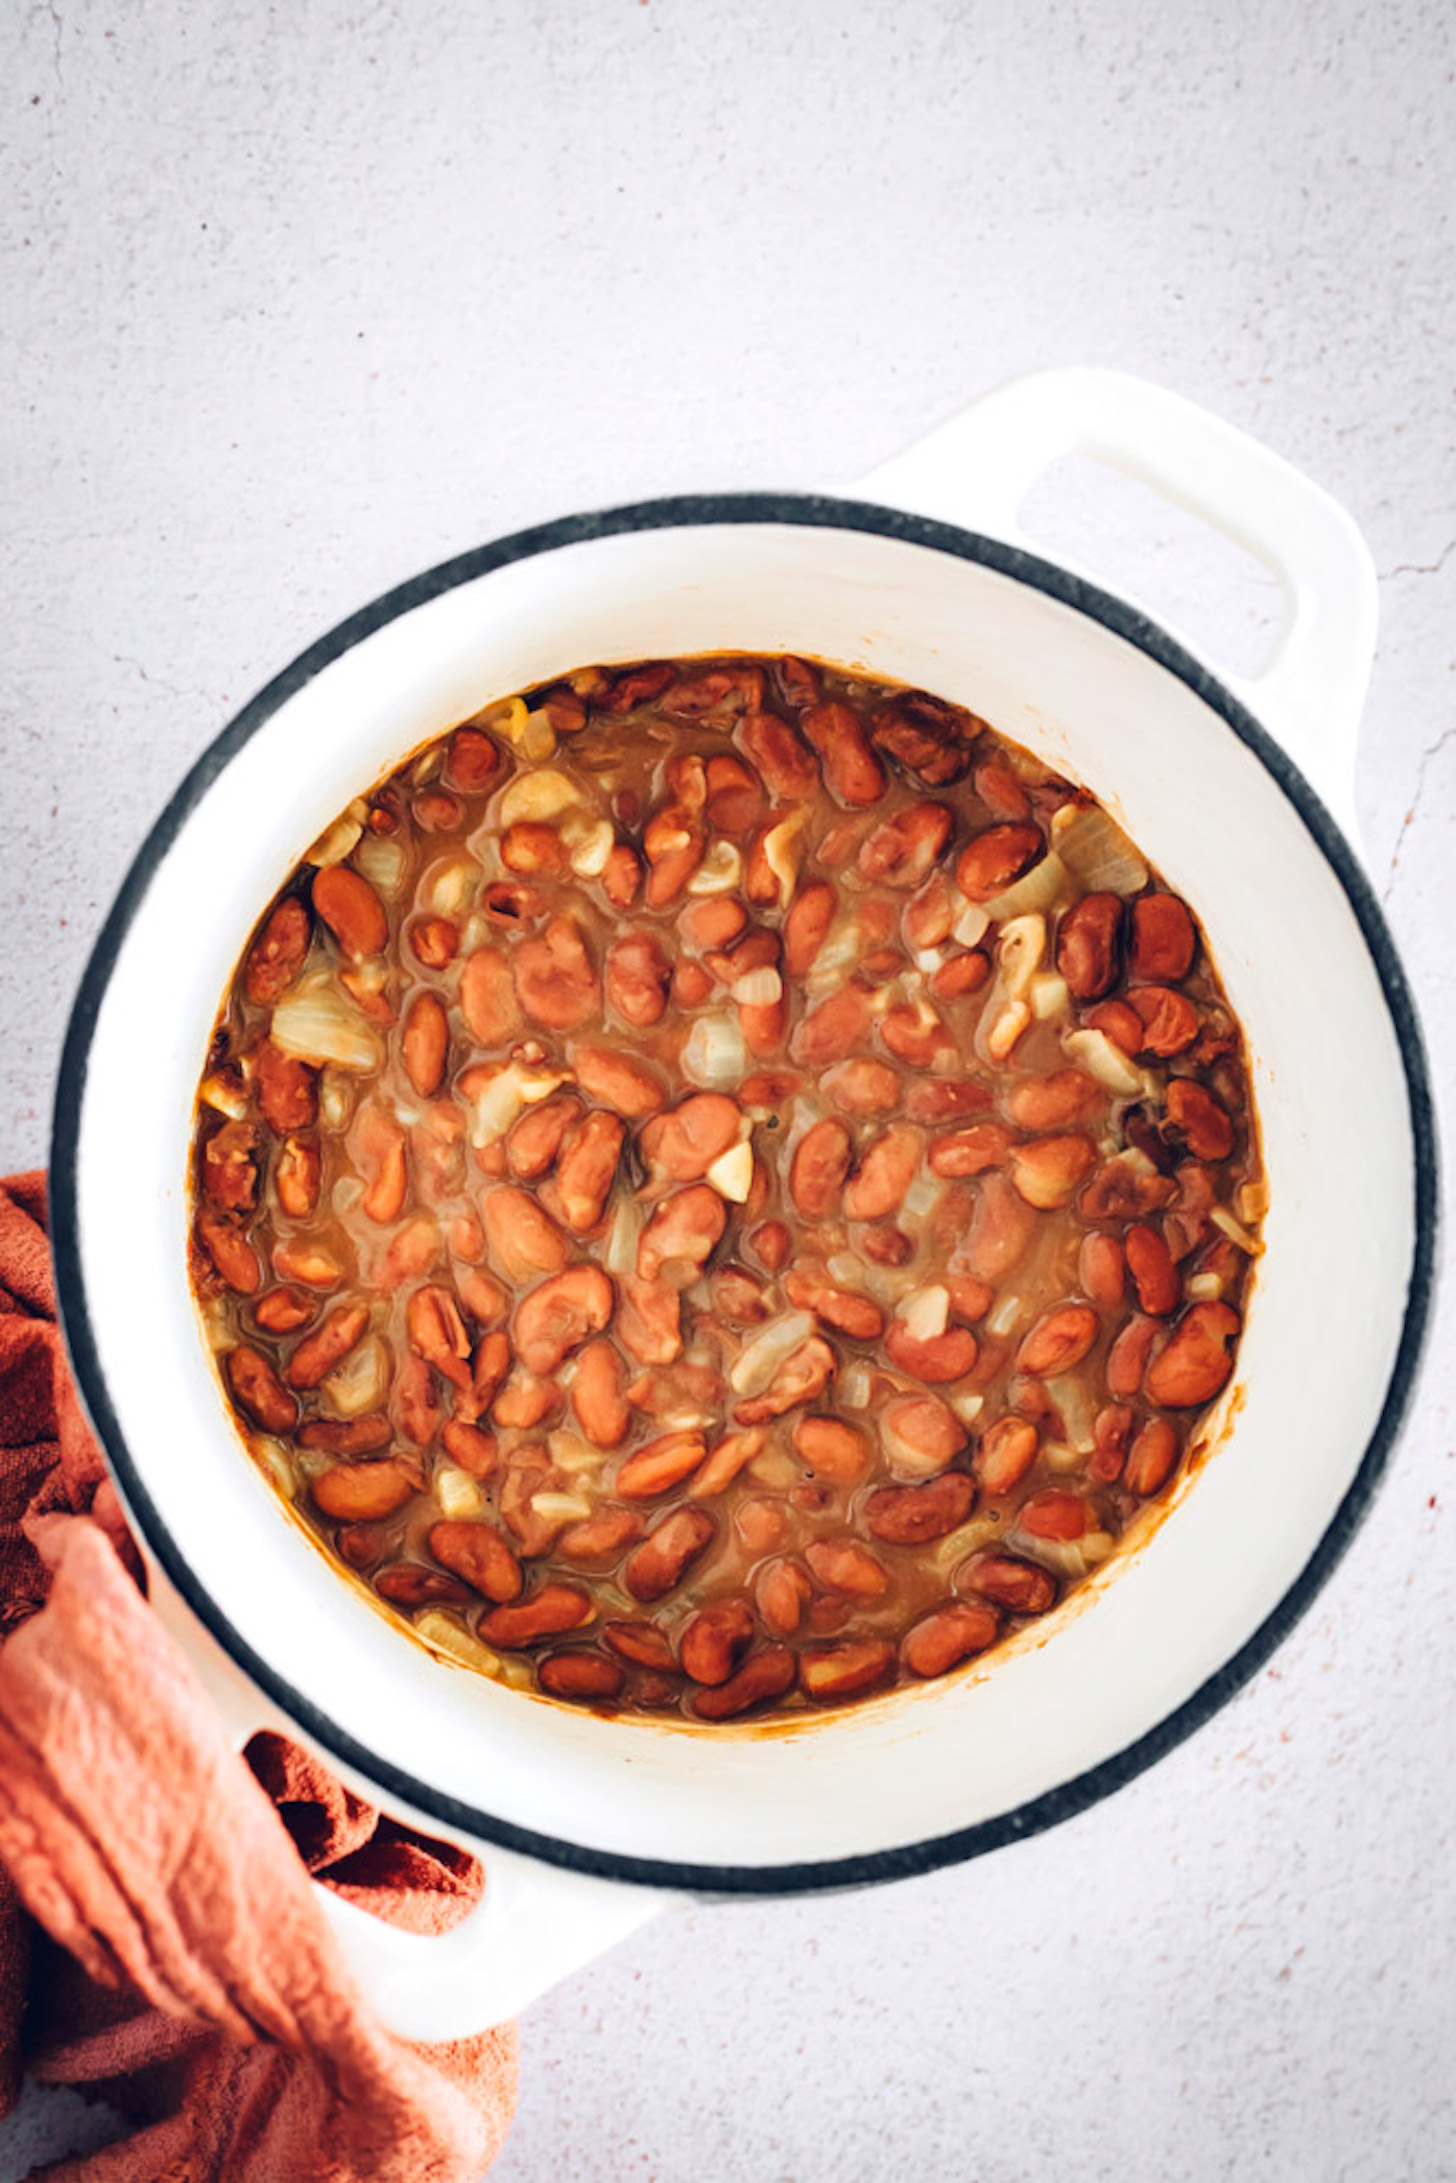 Dutch oven of cooked pinto beans seasoned with onion and garlic